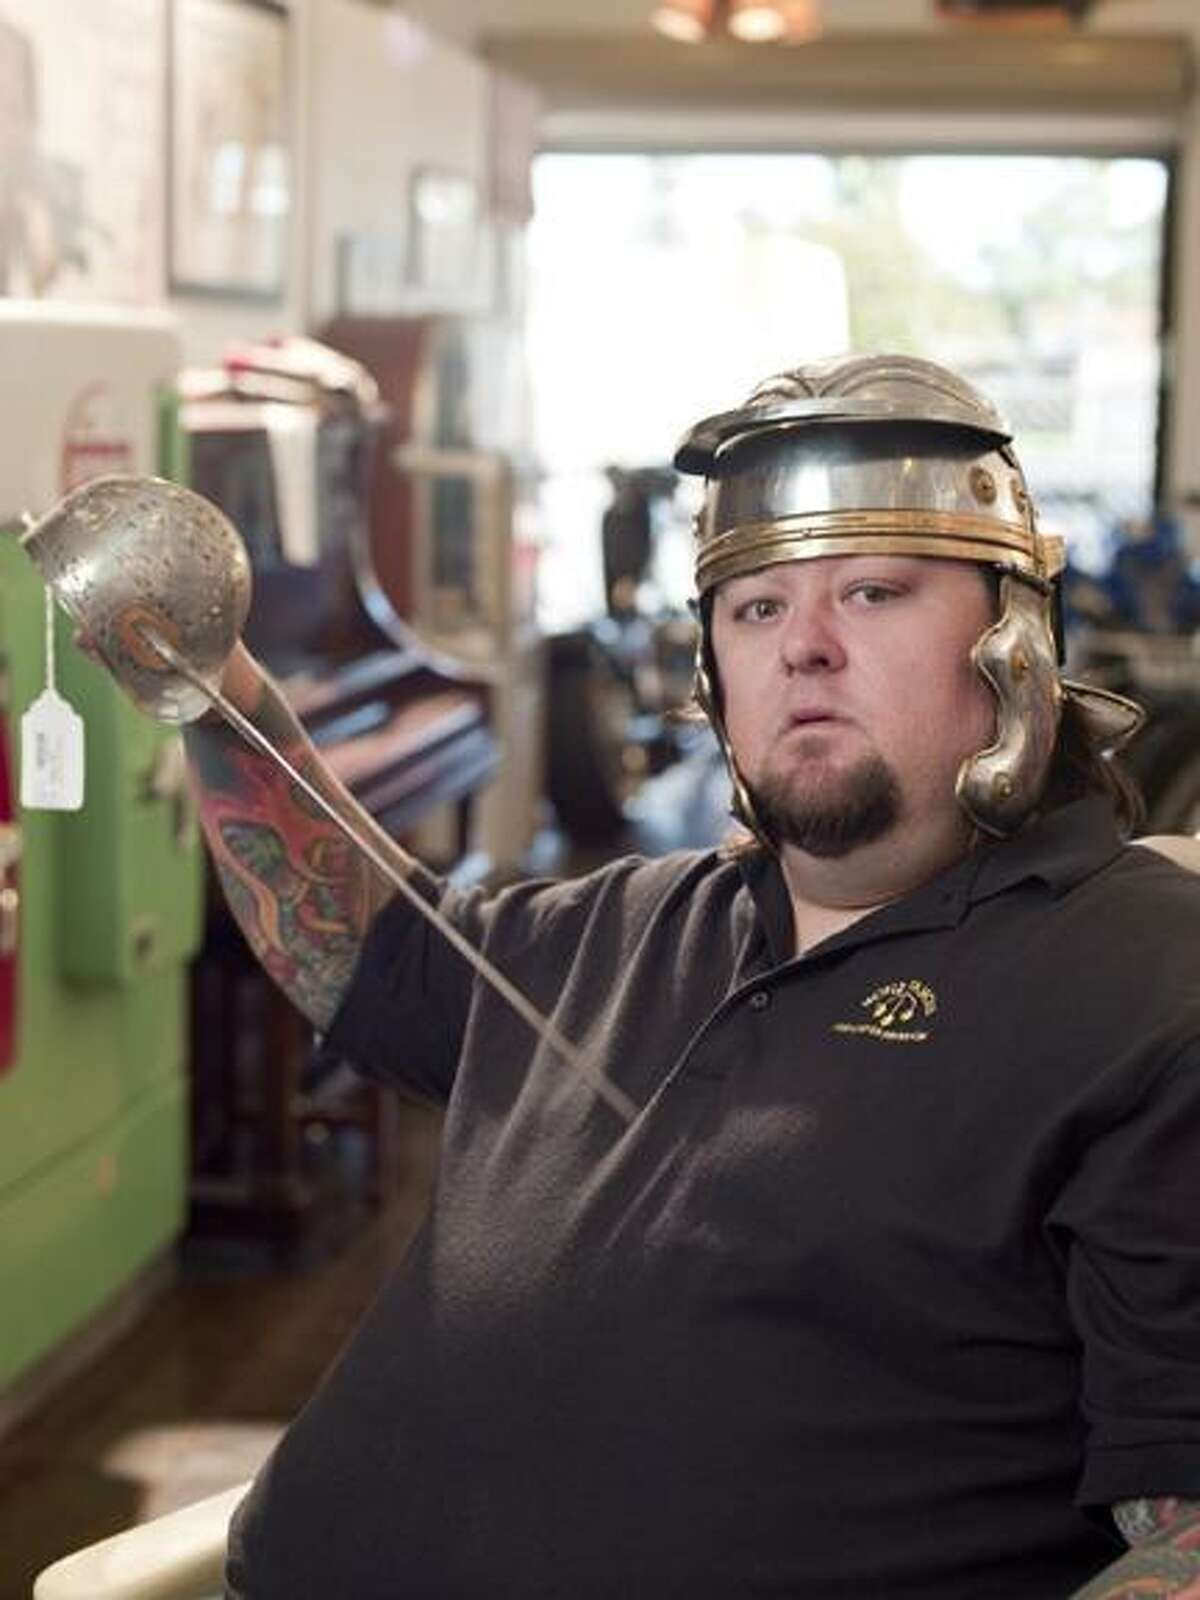 Photo Courtesy The History Channel Chumlee wears a helmet and holds a sword at the Gold and Silver Pawn Shop in Las Vegas, Nev.